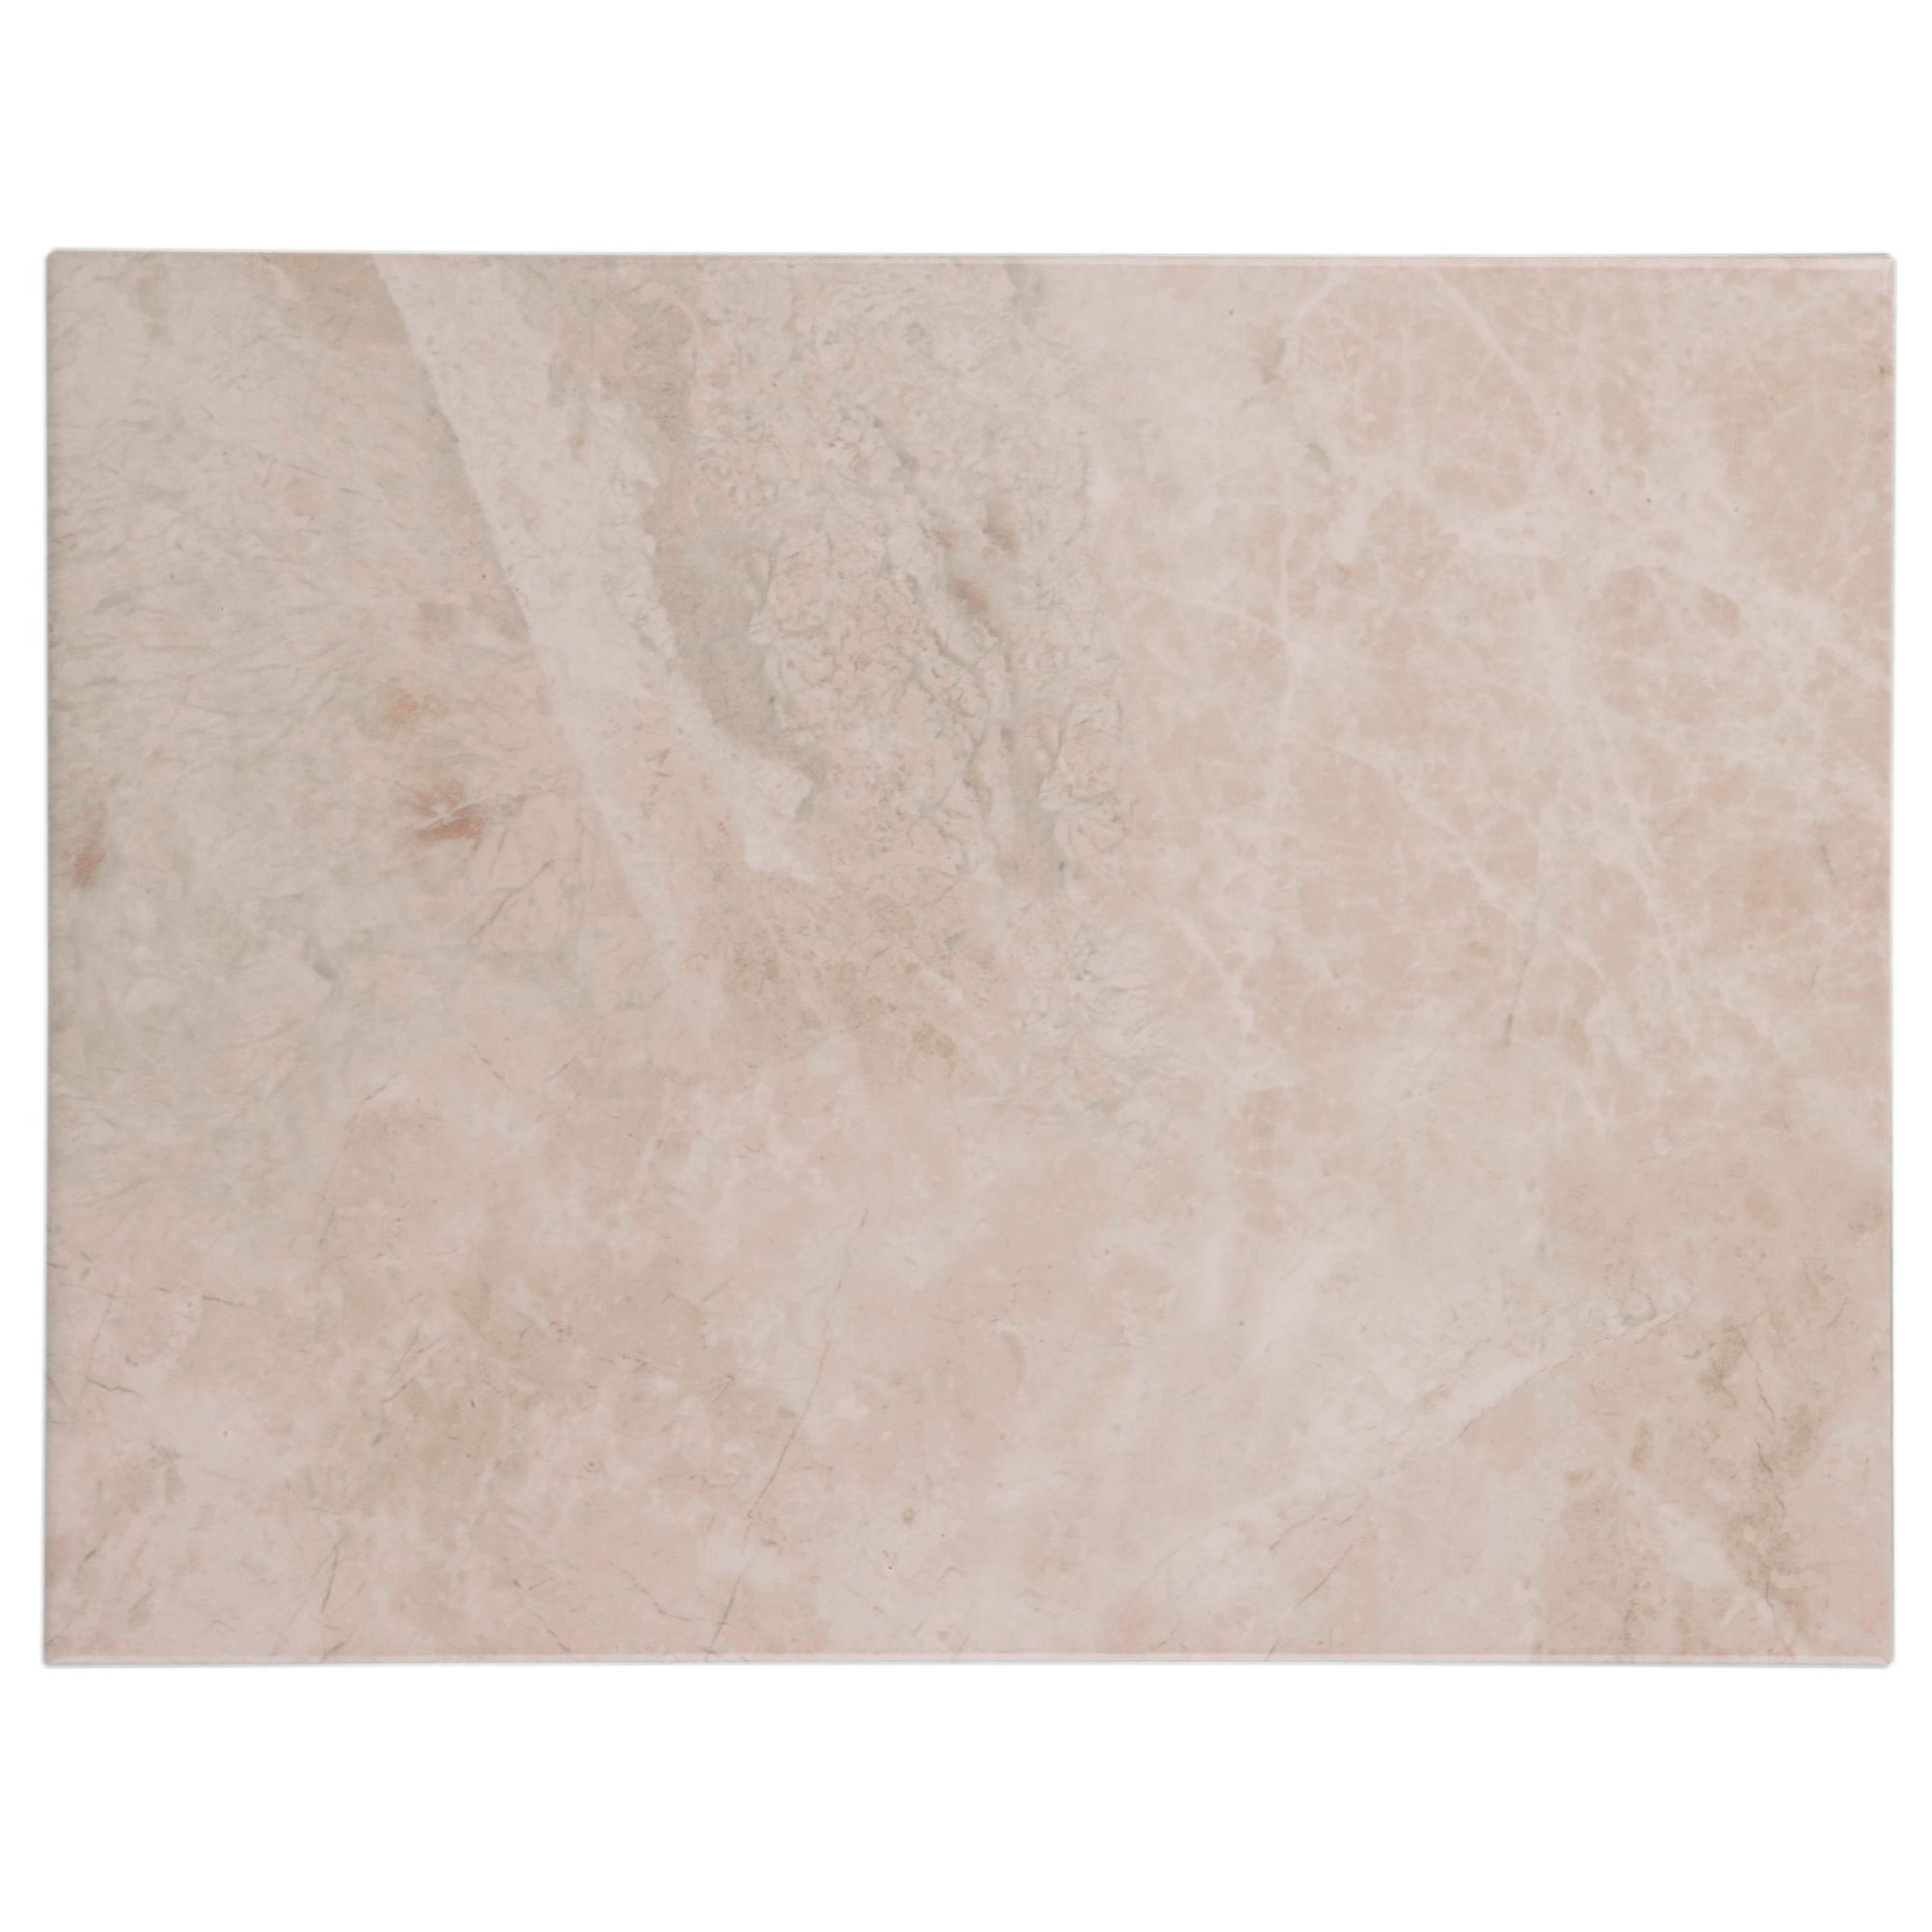 Illusion Cappuccino Marble effect Ceramic Wall & floor tile, Pack of ...